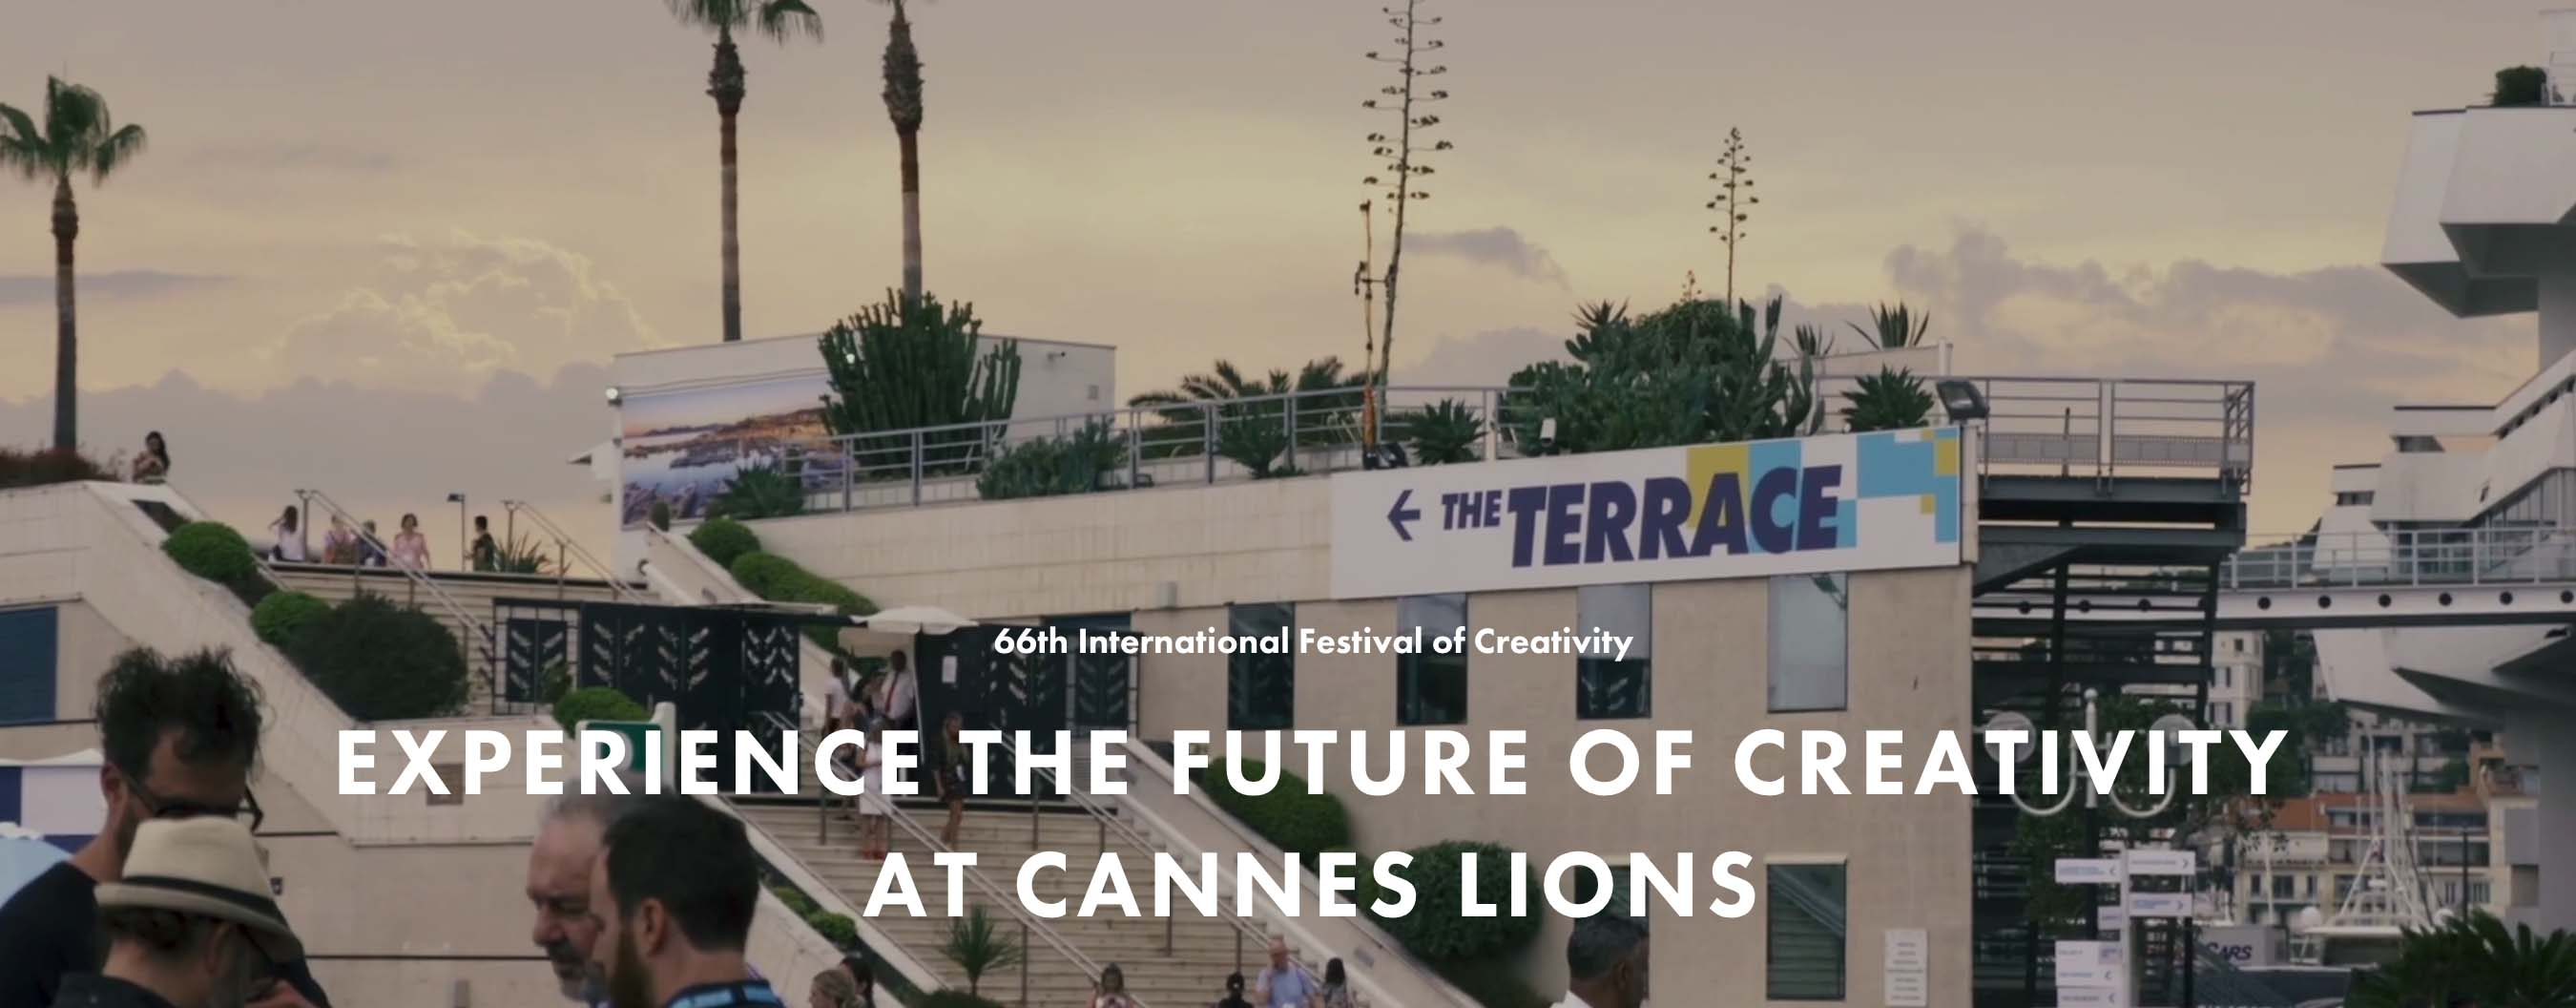 Cannes Lions announces first 2019 Jury Members including Paul Nagy from VMLY&R and Tamara O'Neill from Liquid Studios